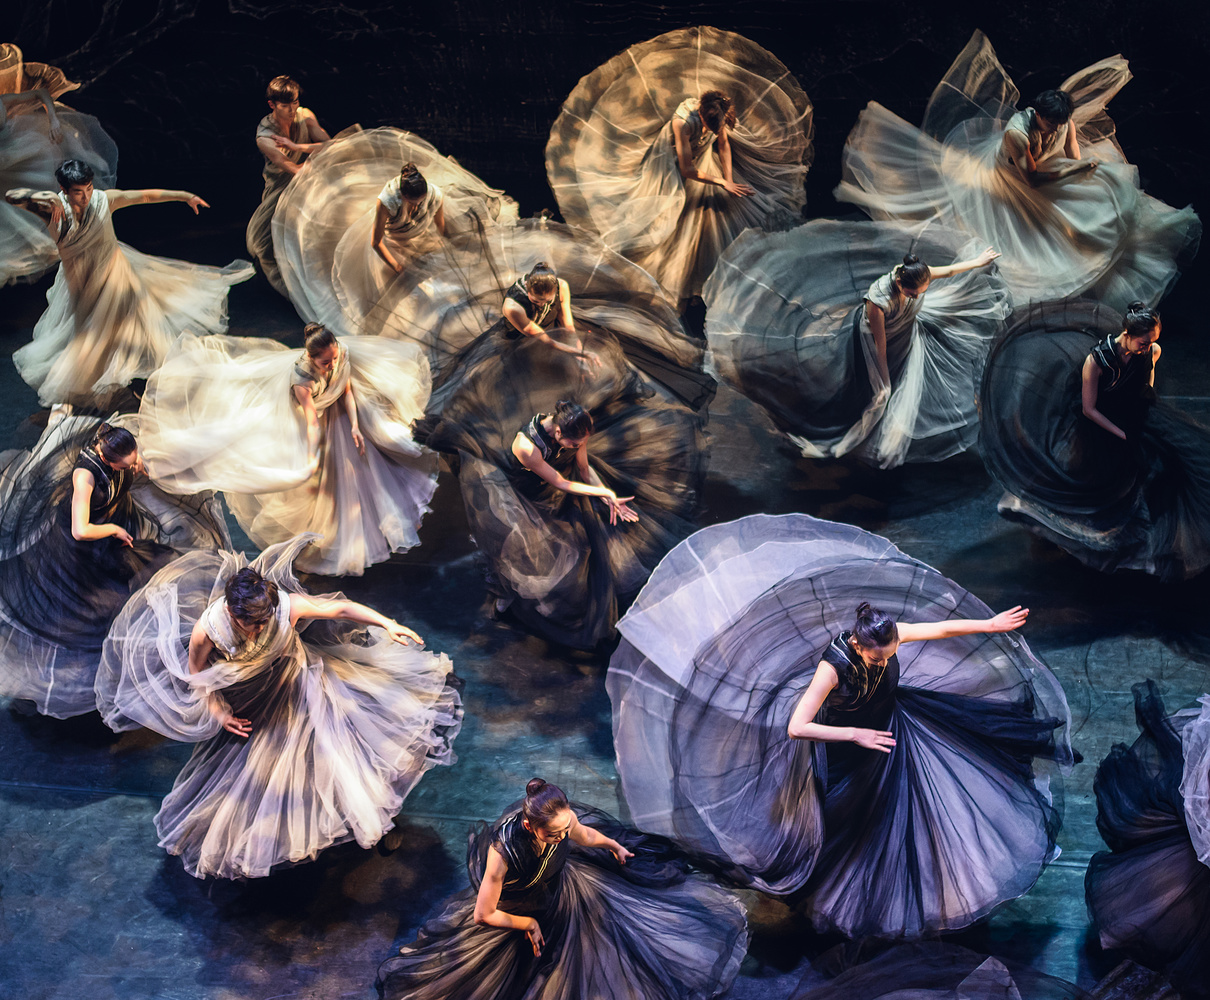 Flow of skirts by Janos Lakatos